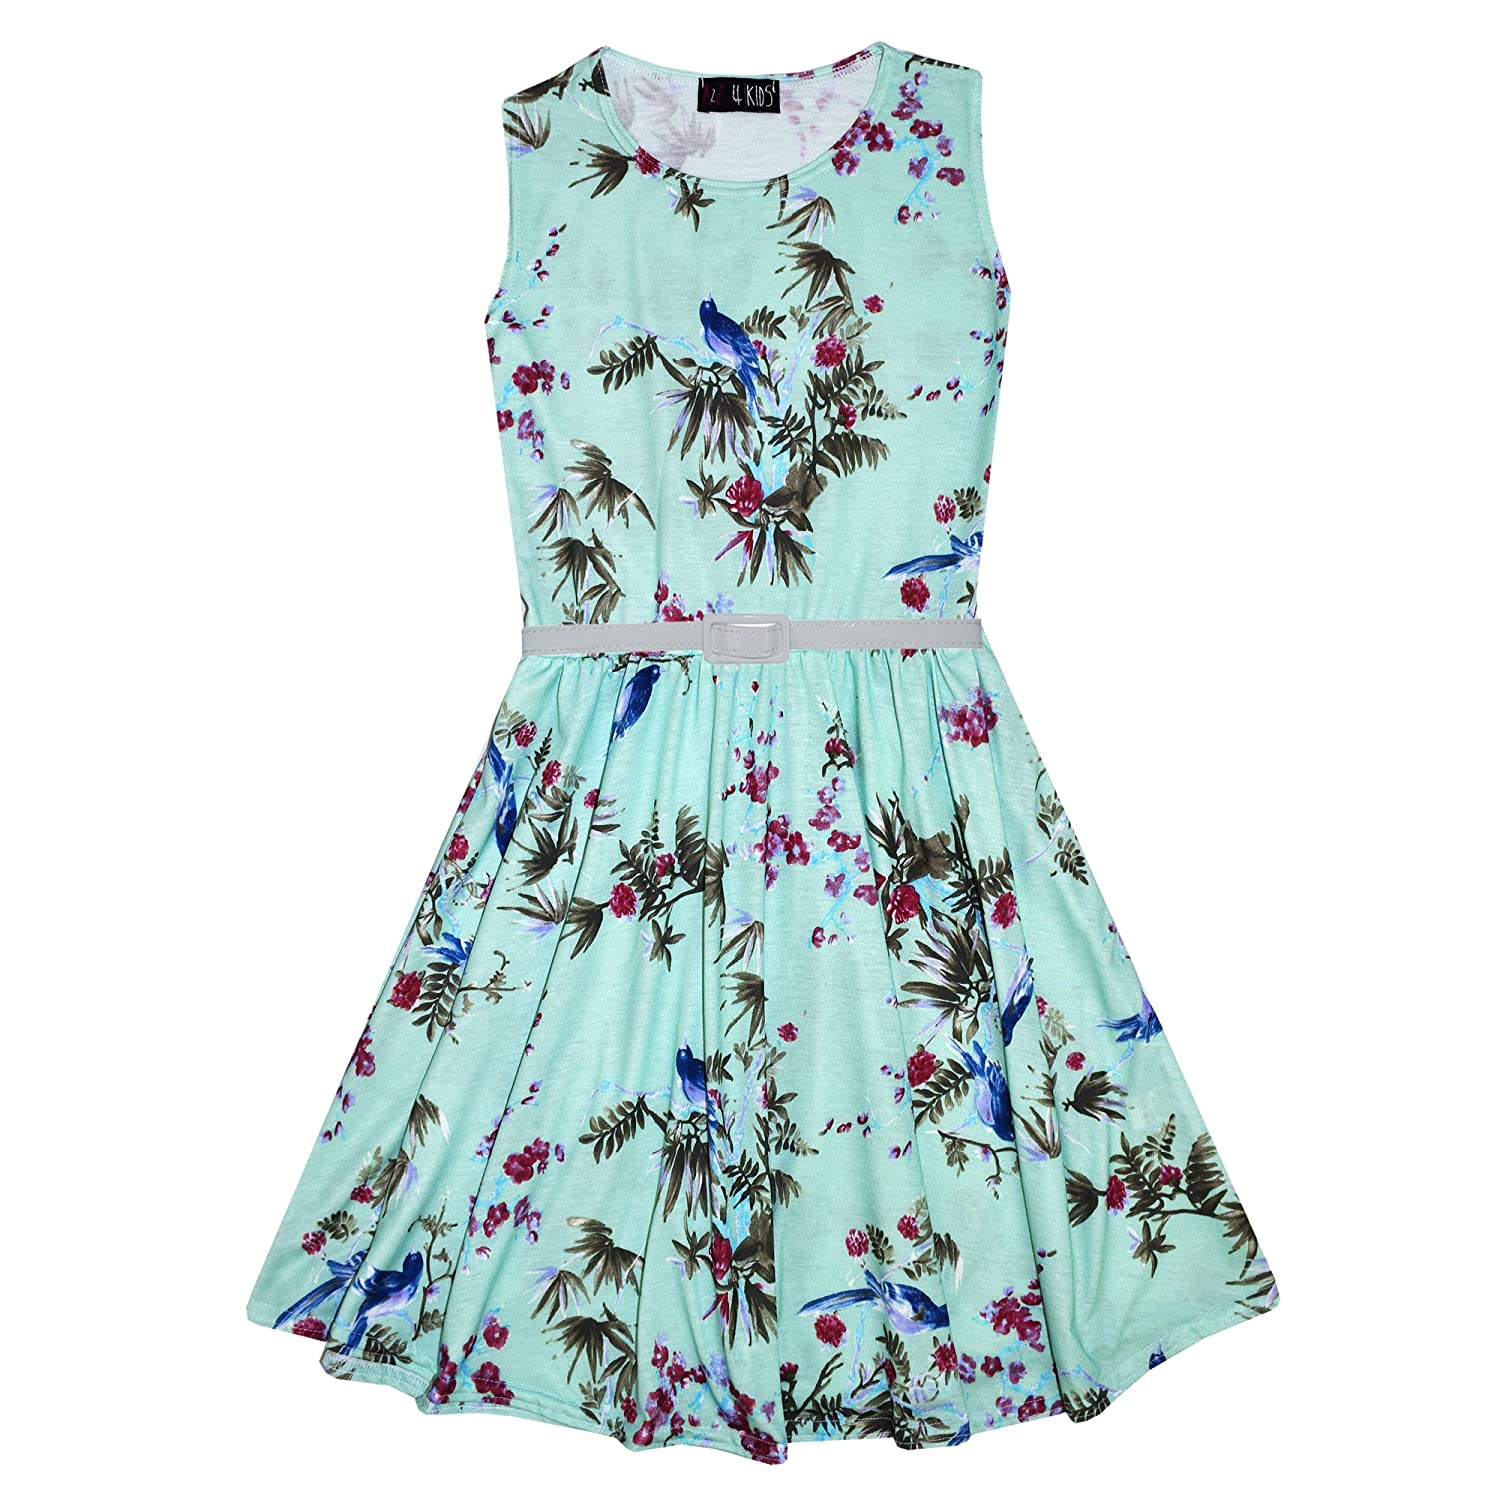 A2Z 4 Kids® Girls Skater Dress Kids Floral Mint Abstract Belted Summer  Party Dance Dresses Age 7 8 9 10 11 12 13 Years  Amazon.co.uk  Clothing 61aeb5a0c